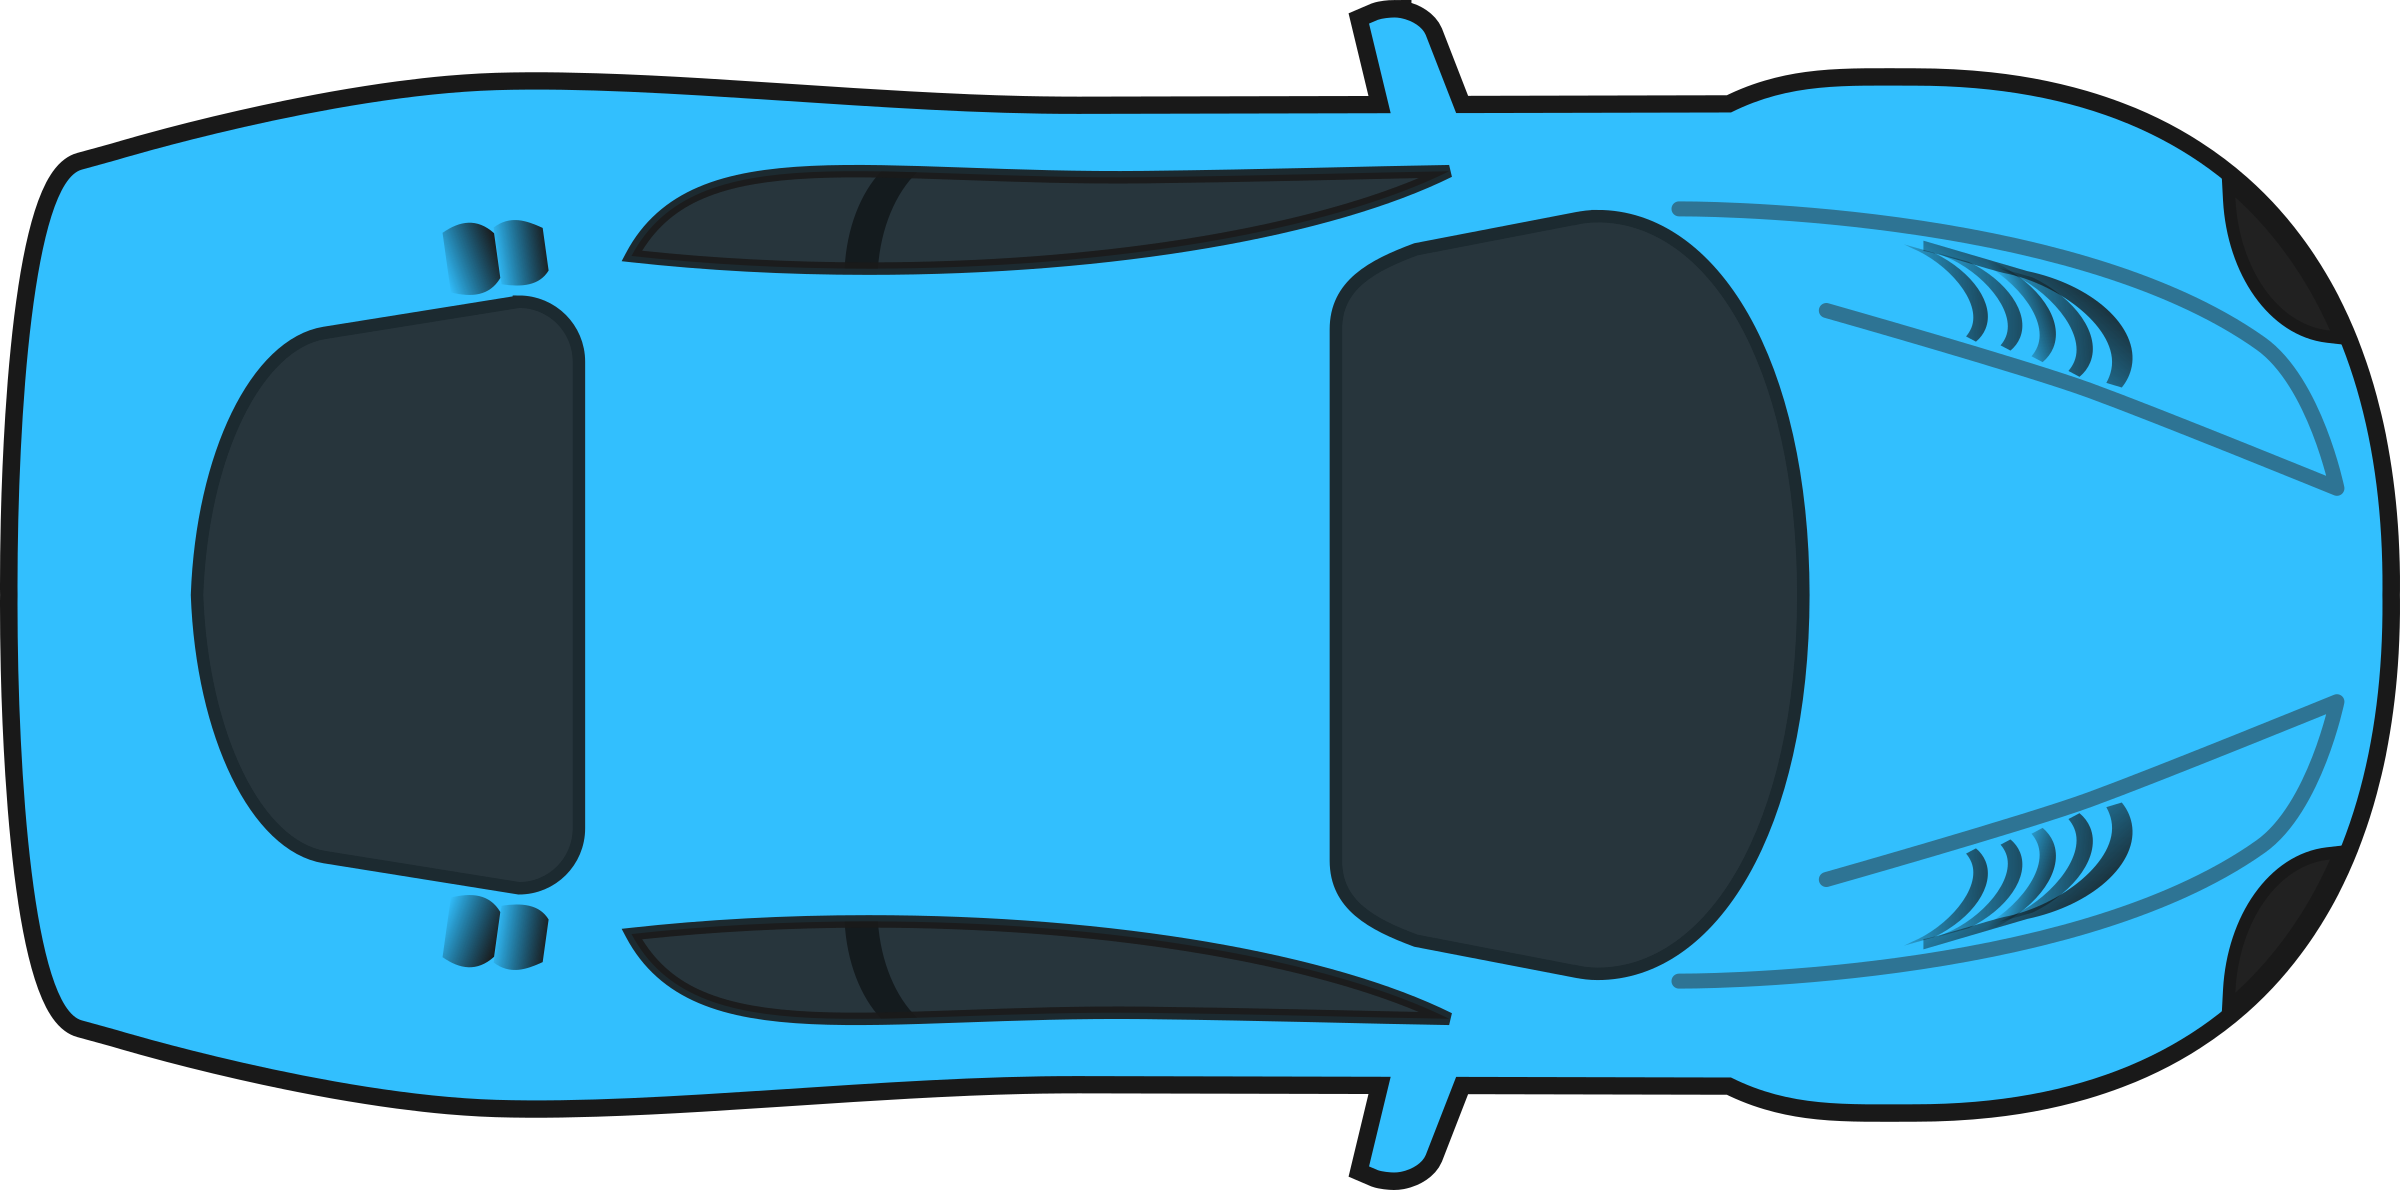 Race car sprite png. Clipart blue racing top